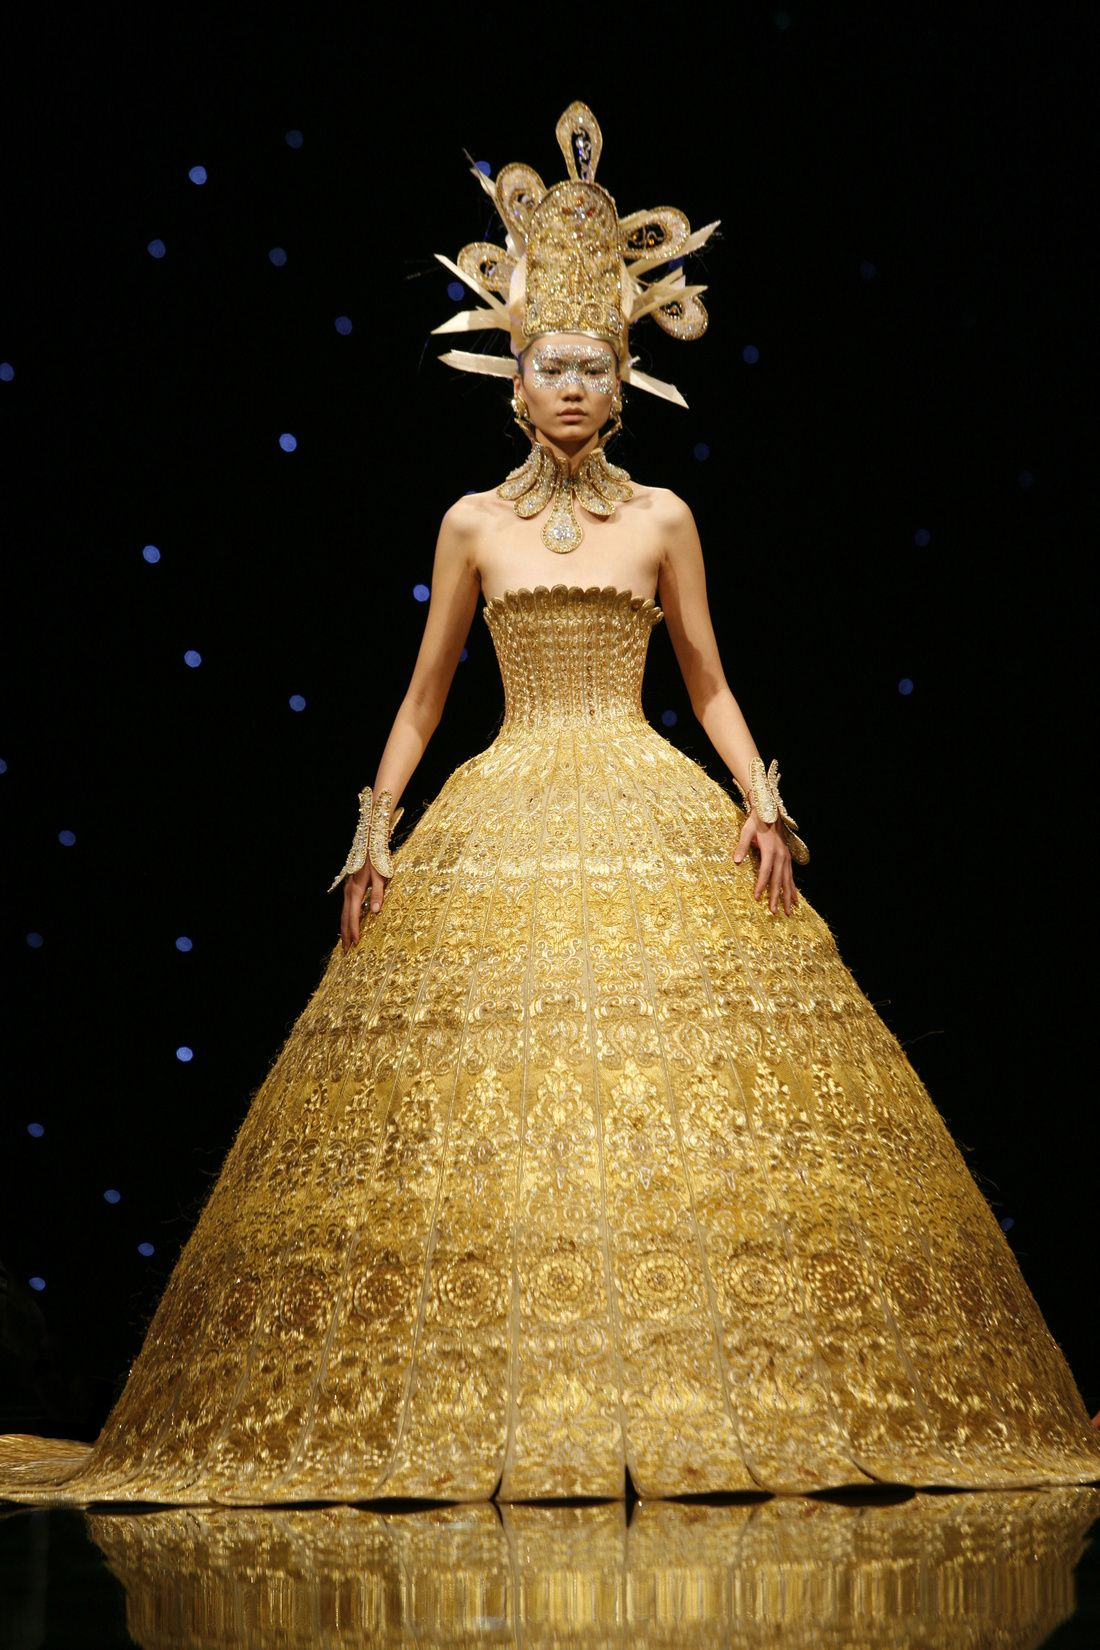 67635d137 Guo Pei, gold lamé haute couture gown inspired by Chinese Buddhist  iconography, courtesy of Guo Pei Rose Studio